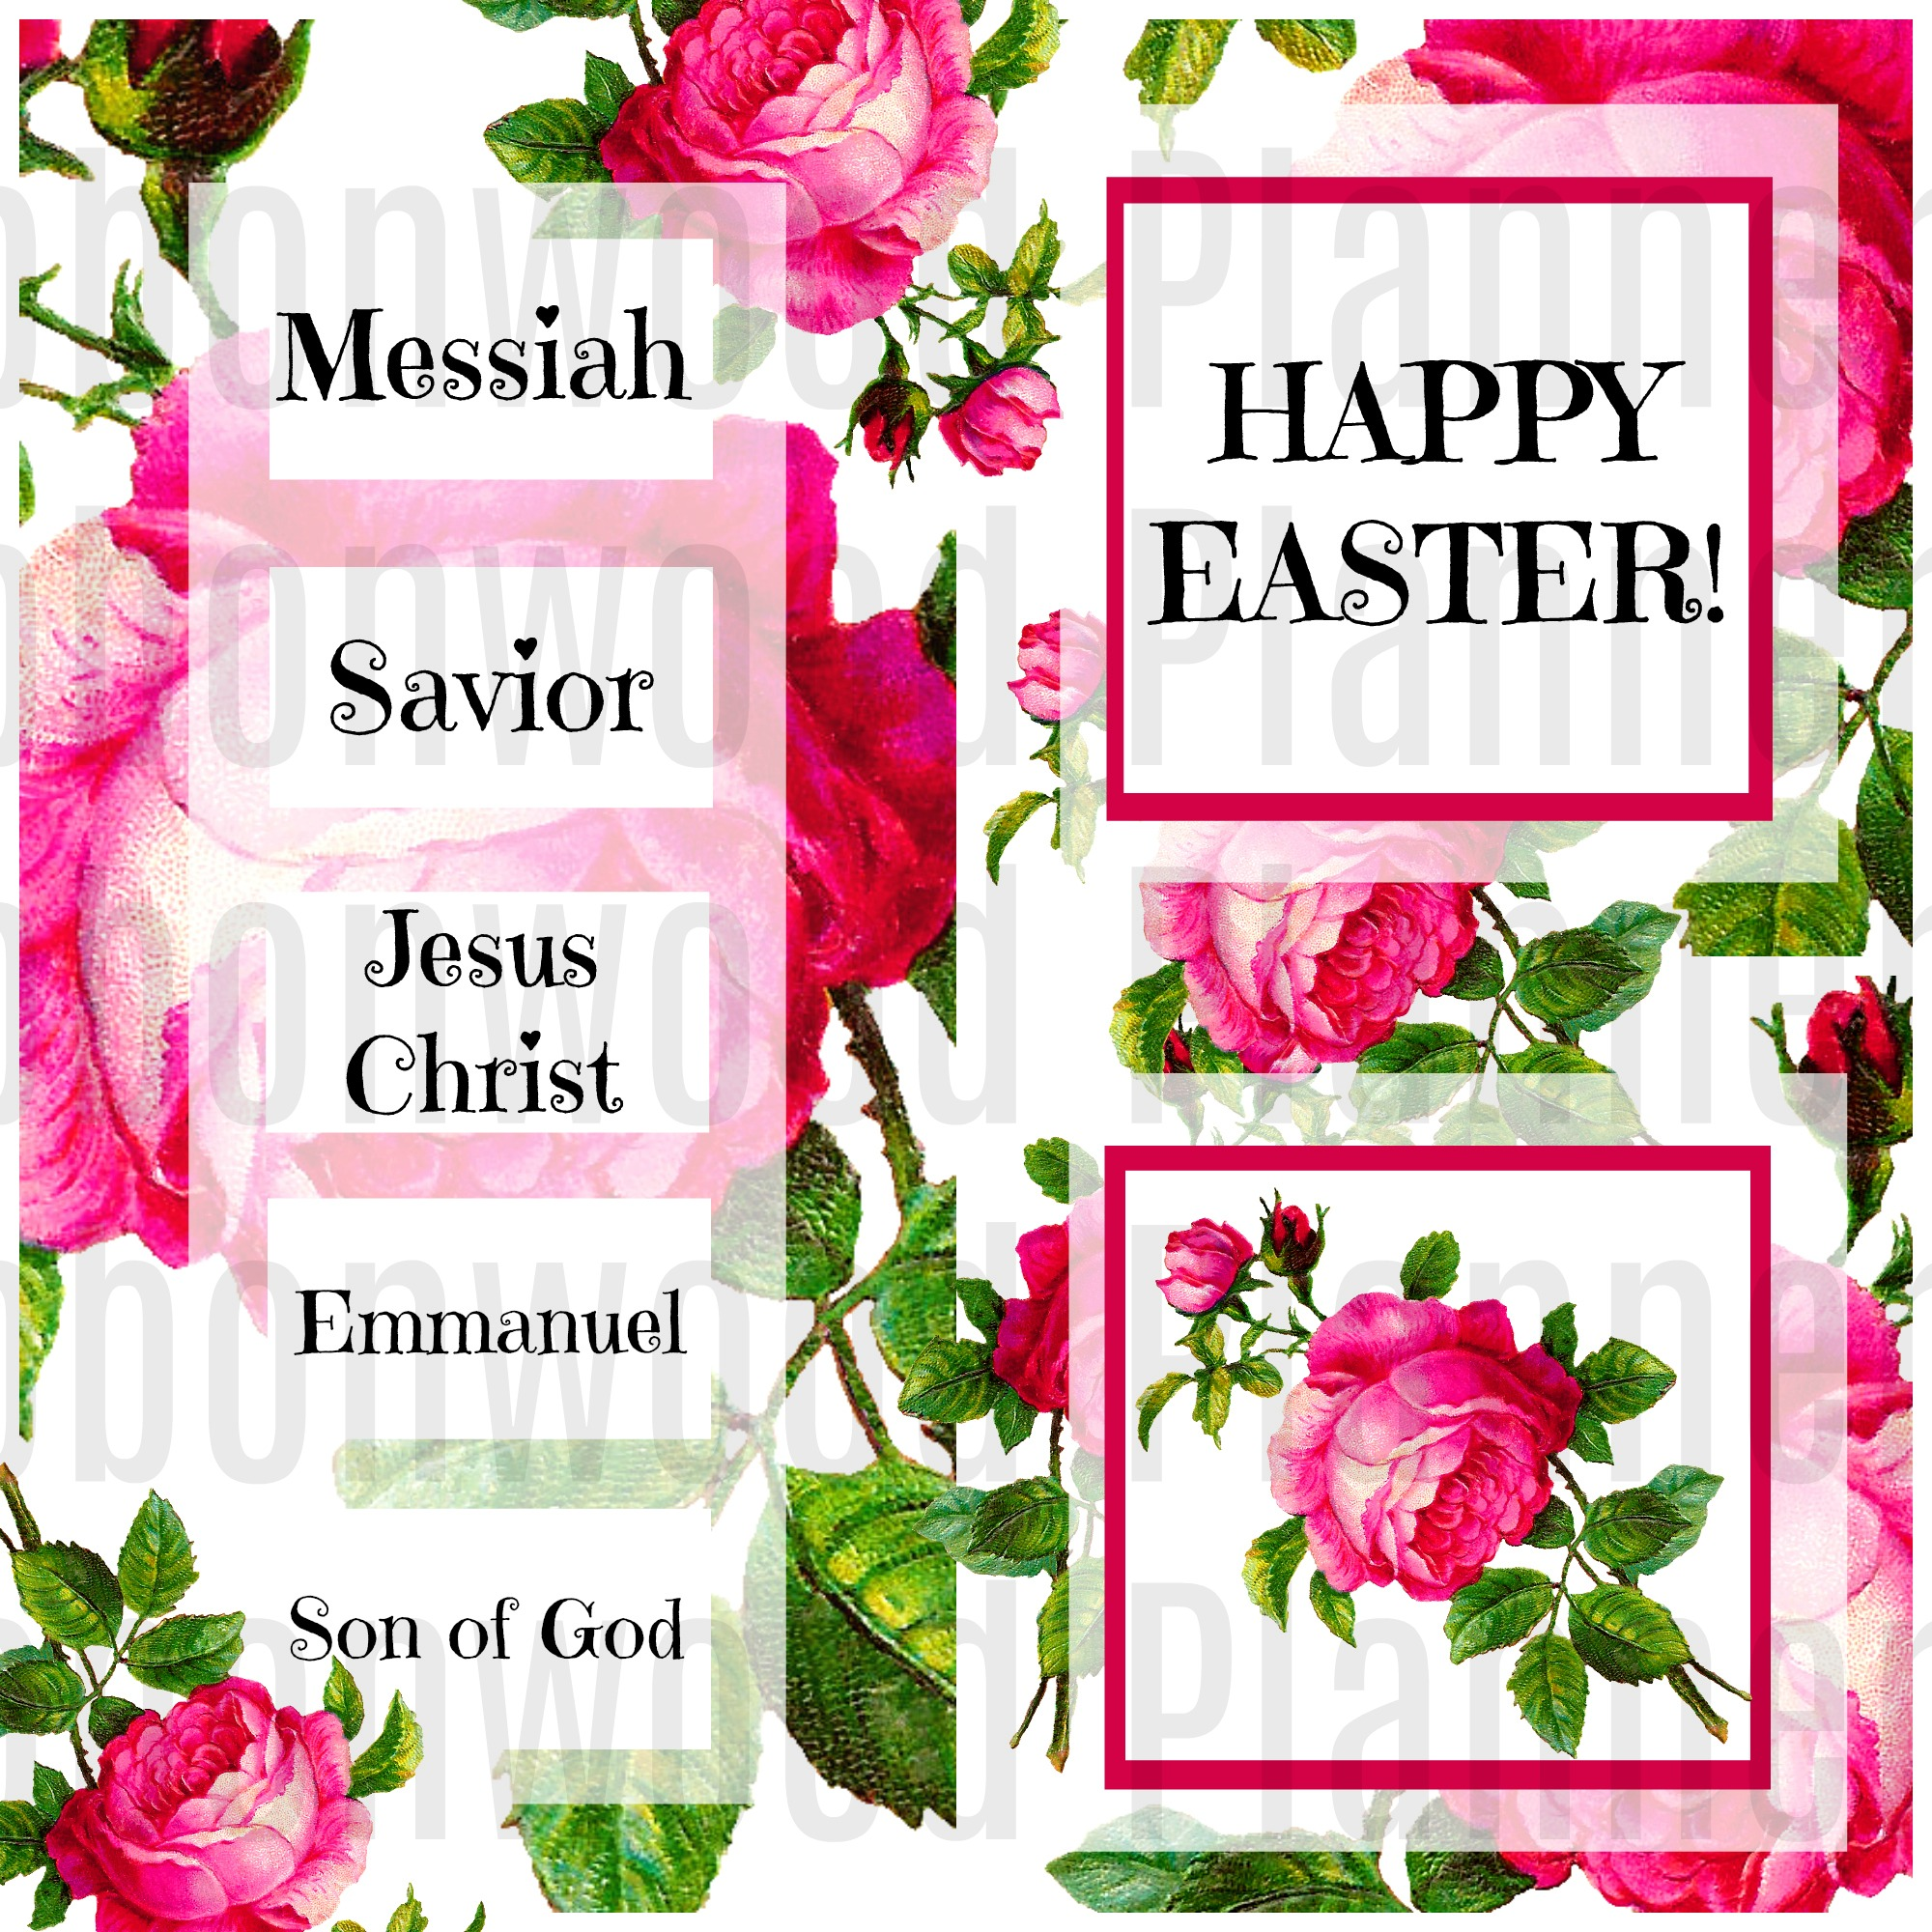 EASTER Names of Savior watermark